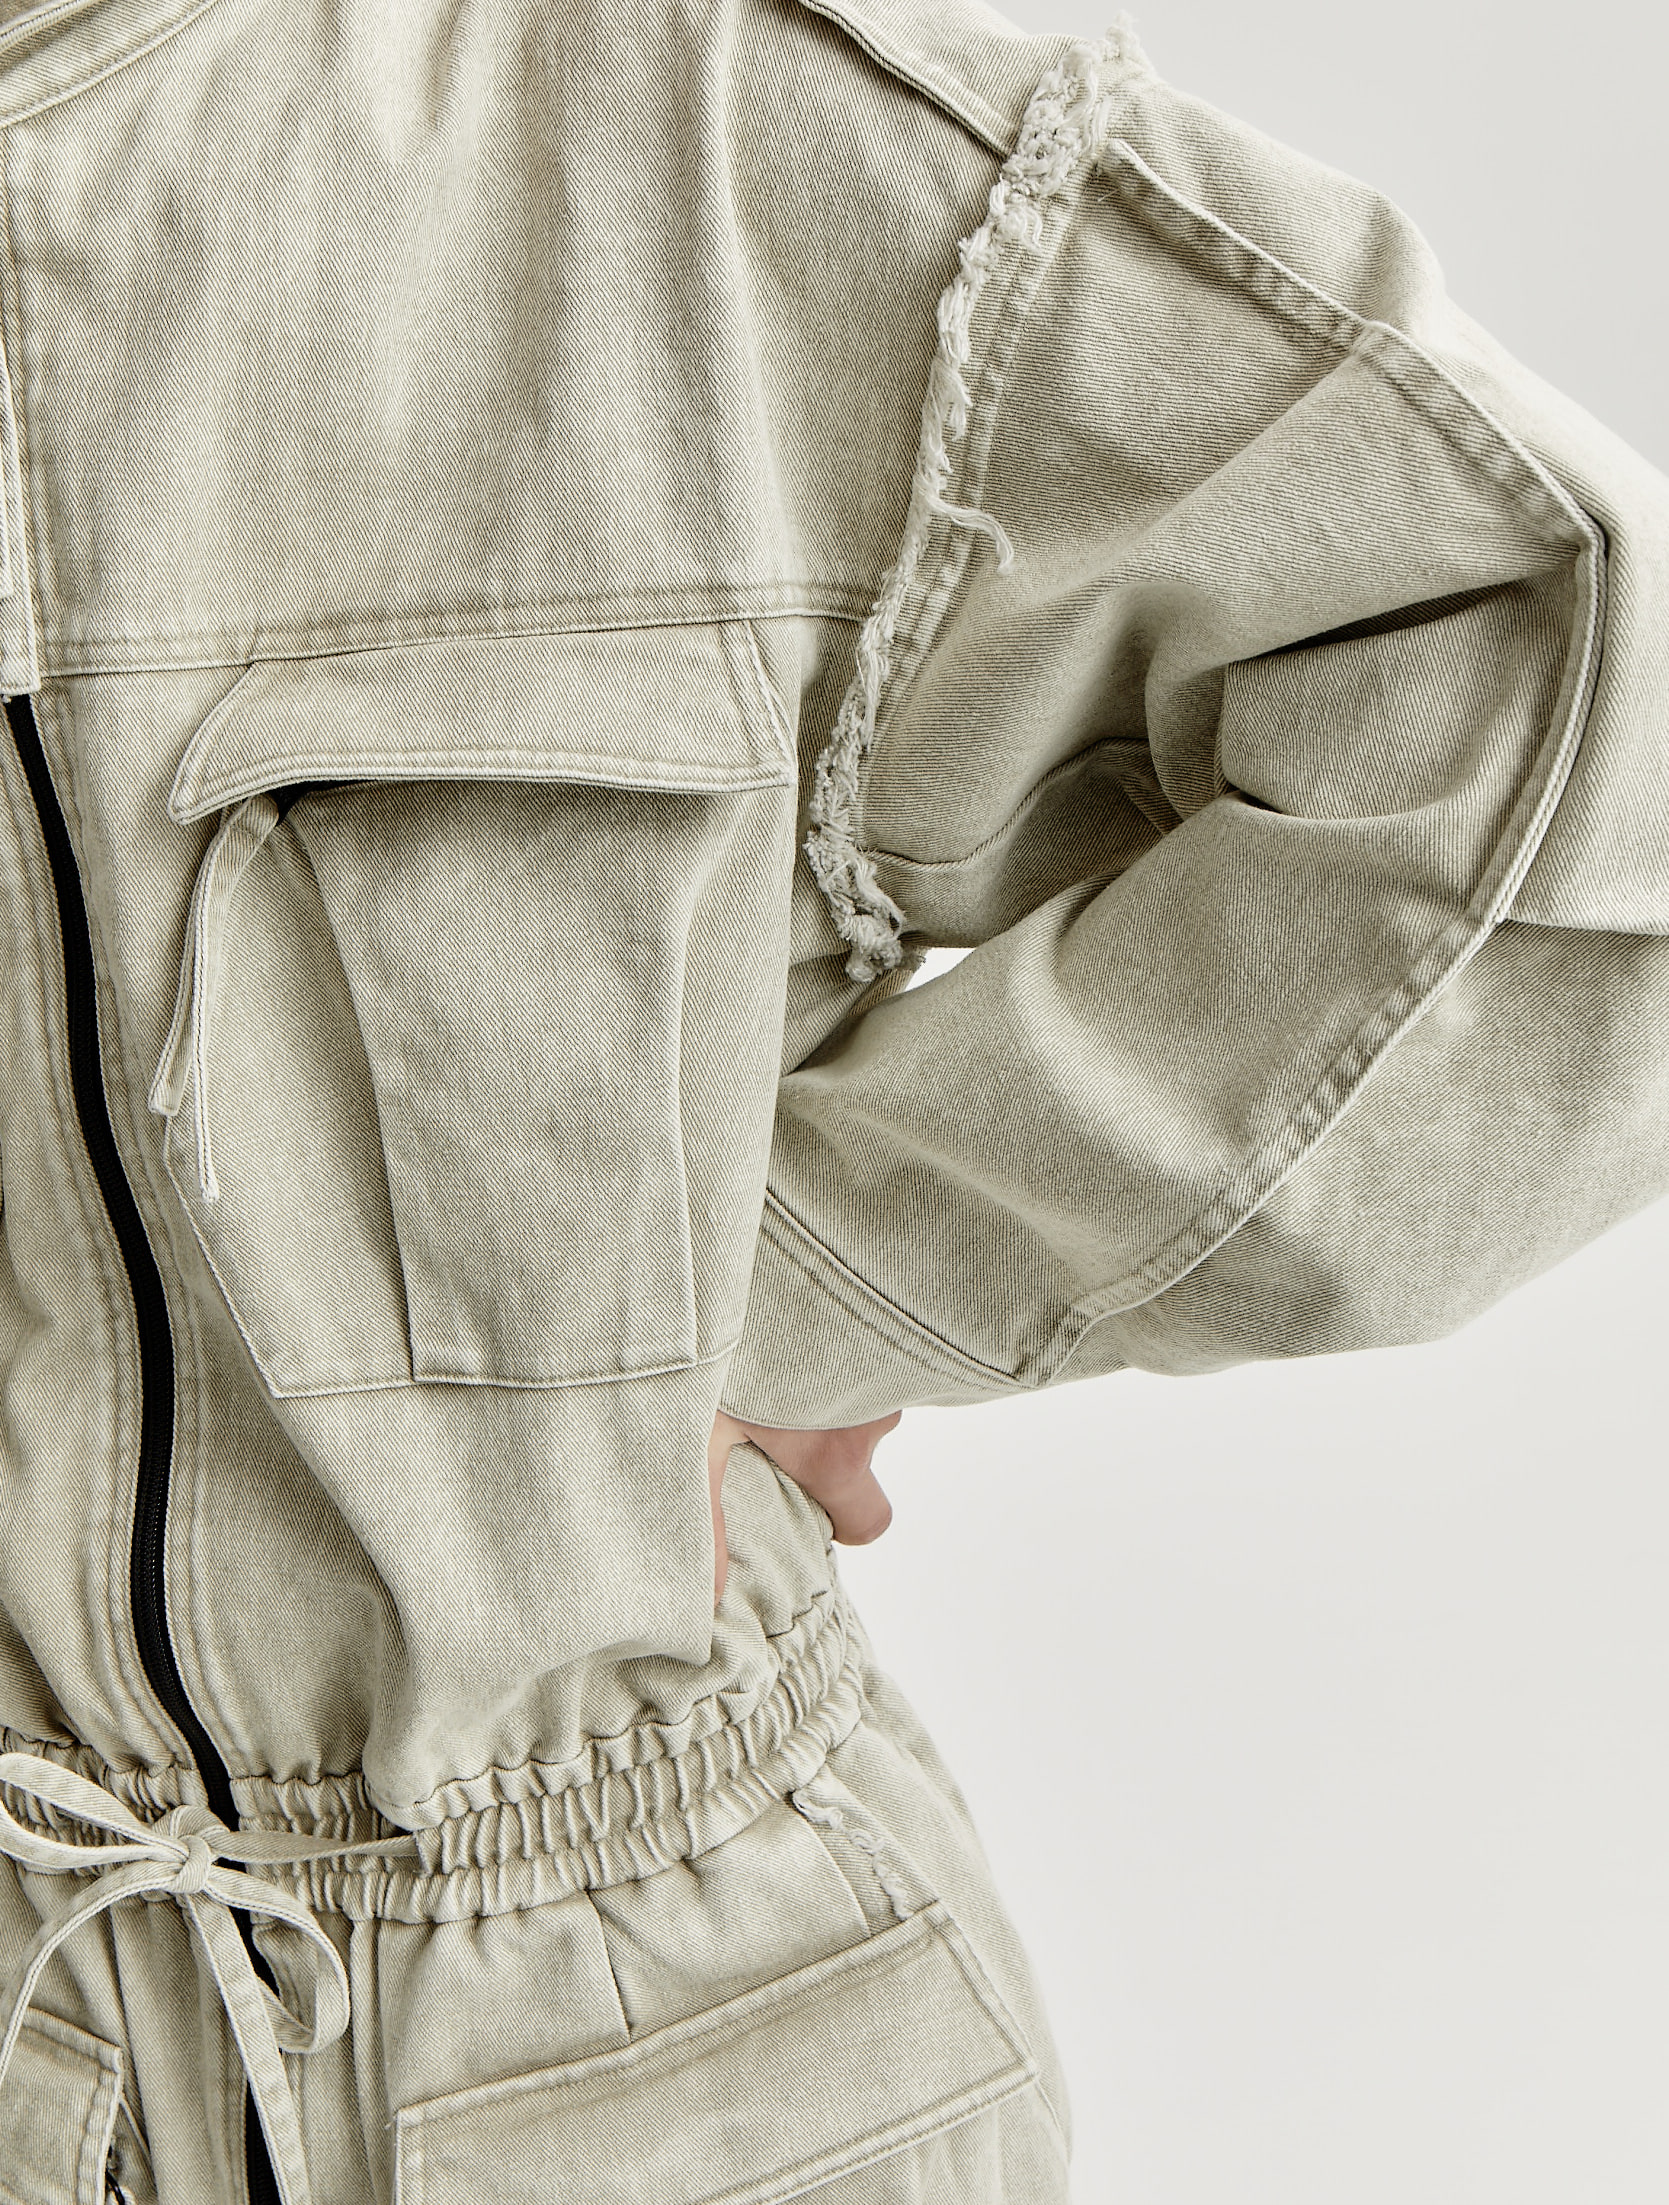 Stone Washed Signature Pocket Raw Edge Denim Overall